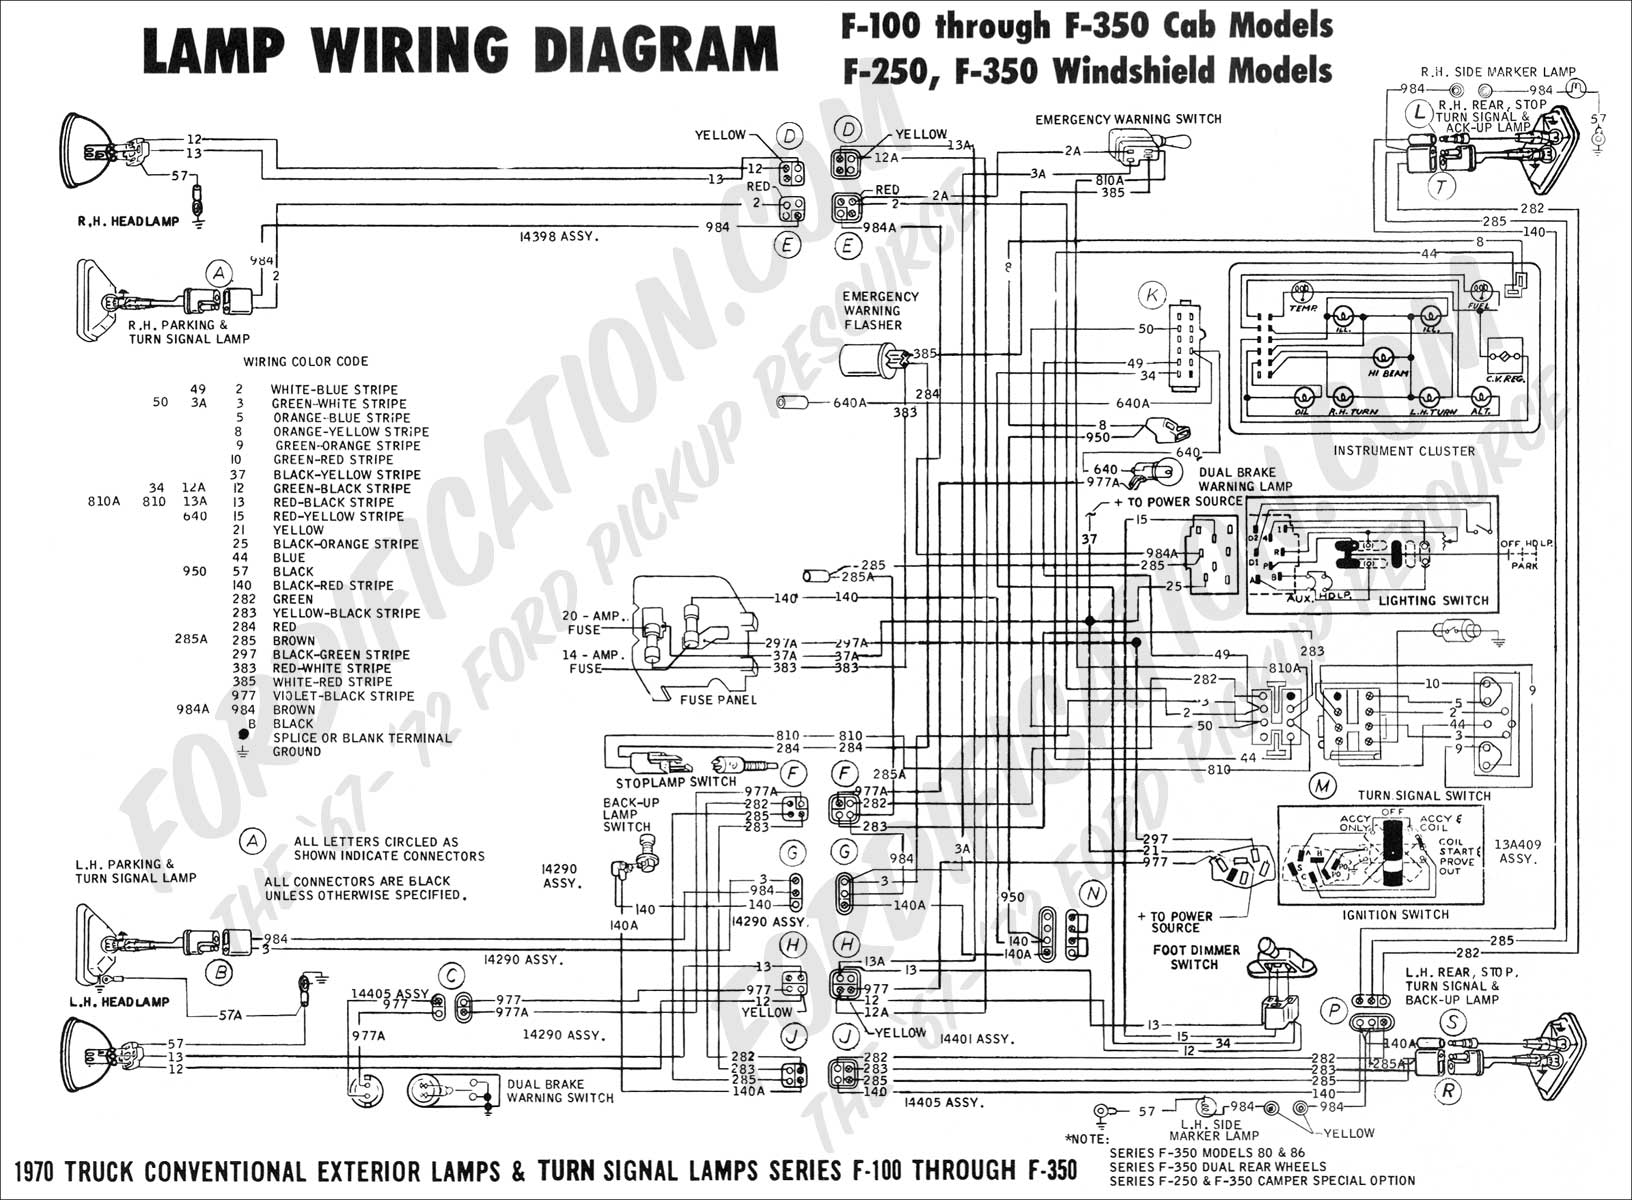 1969 chevy van wiring diagram with Viewtopic on 310419931280 besides Brake line diagram 2000 silverado as well T 154456 furthermore respond further 1965 Buick Riviera Headlight Wiring Diagram.